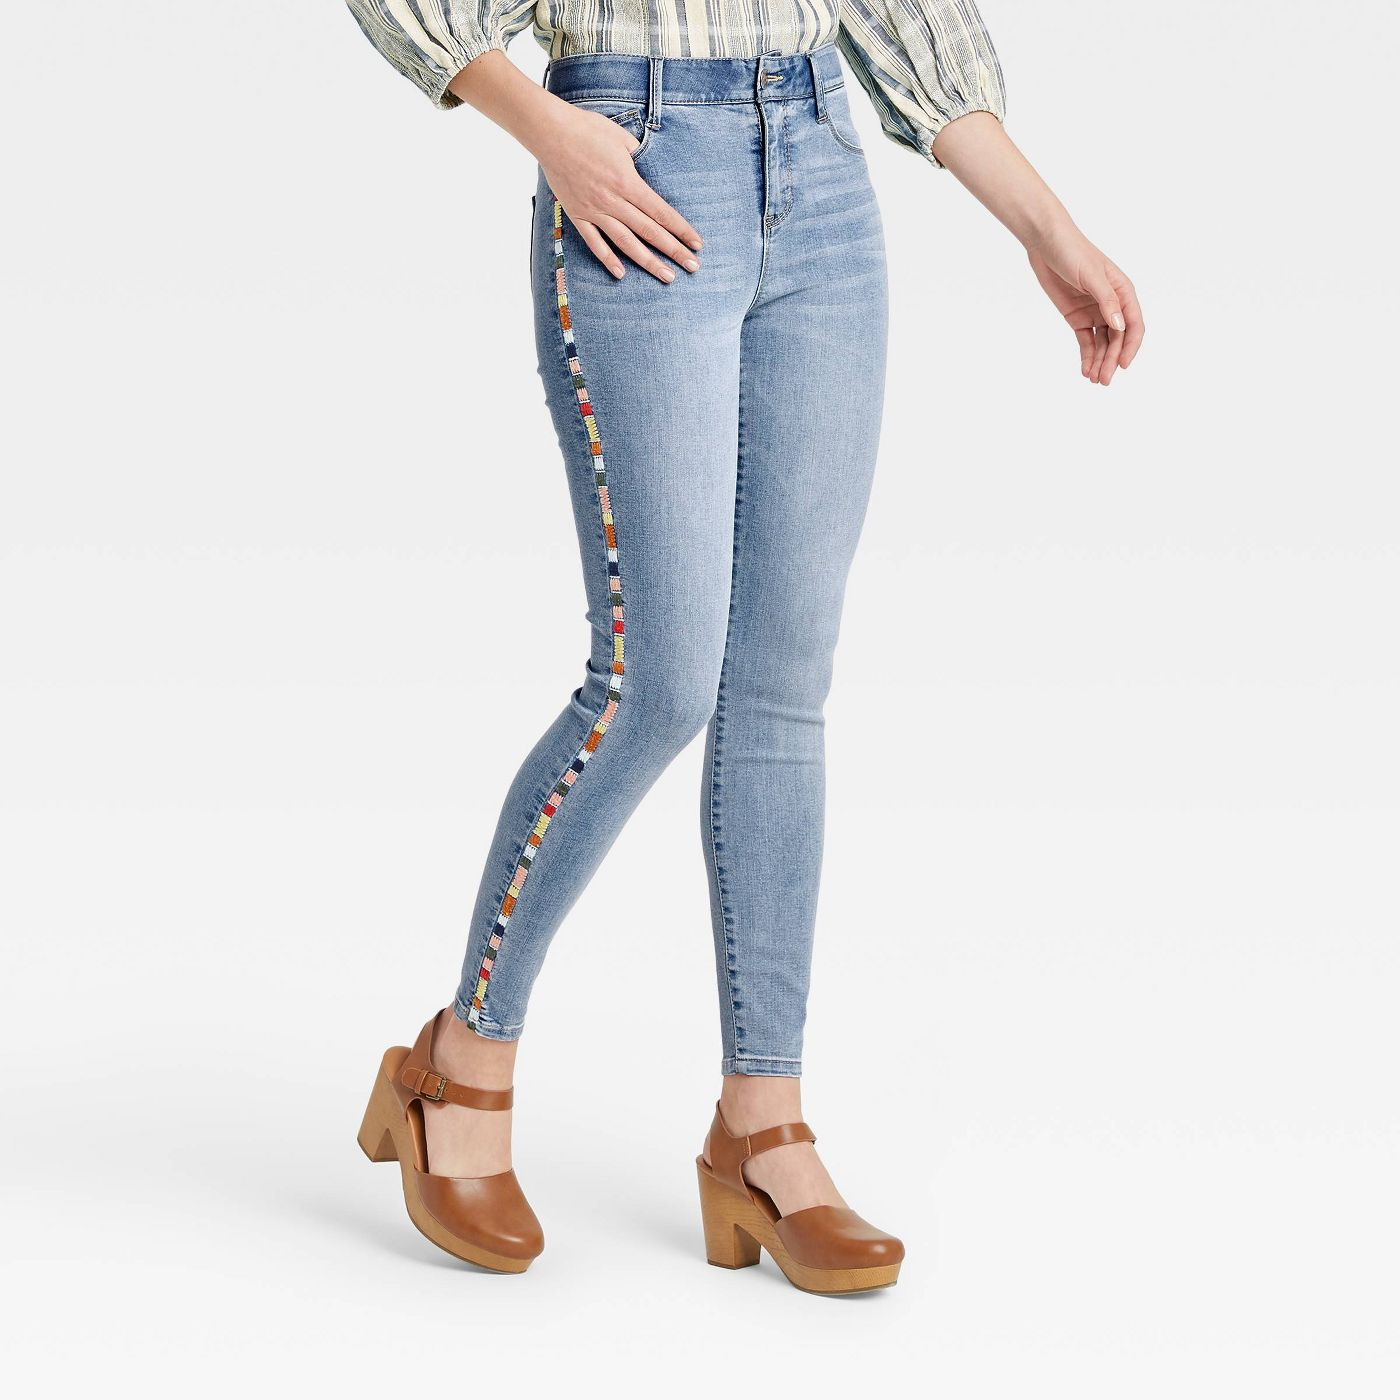 Women's Mid-Rise Embroidered Denim Ankle Pants - Knox Rose™ - image 1 of 6